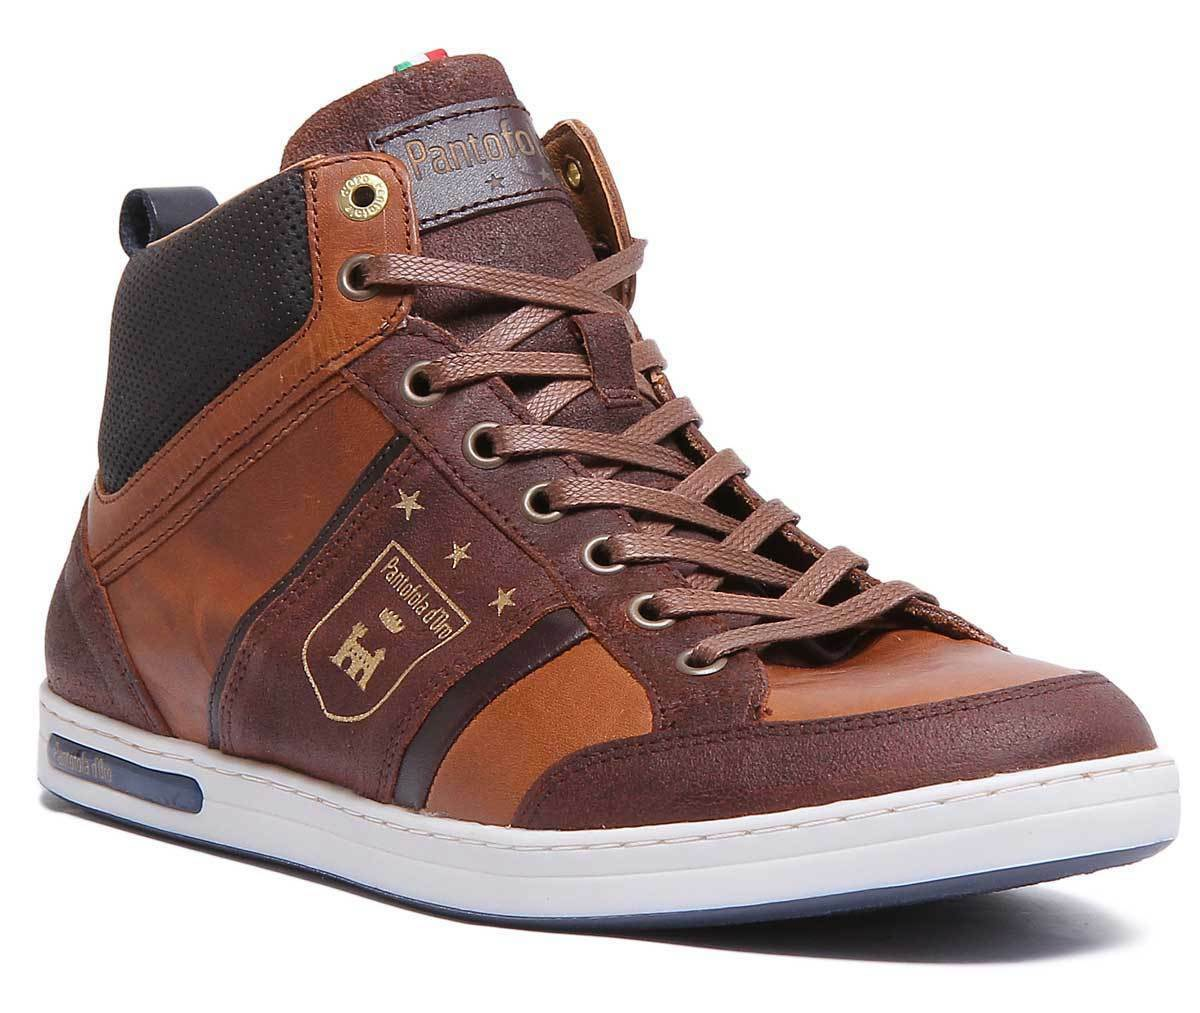 Pantofola D'Gold Mondovi Mens Casual Mid Top Trainers In Tan Größes UK 6 - 12